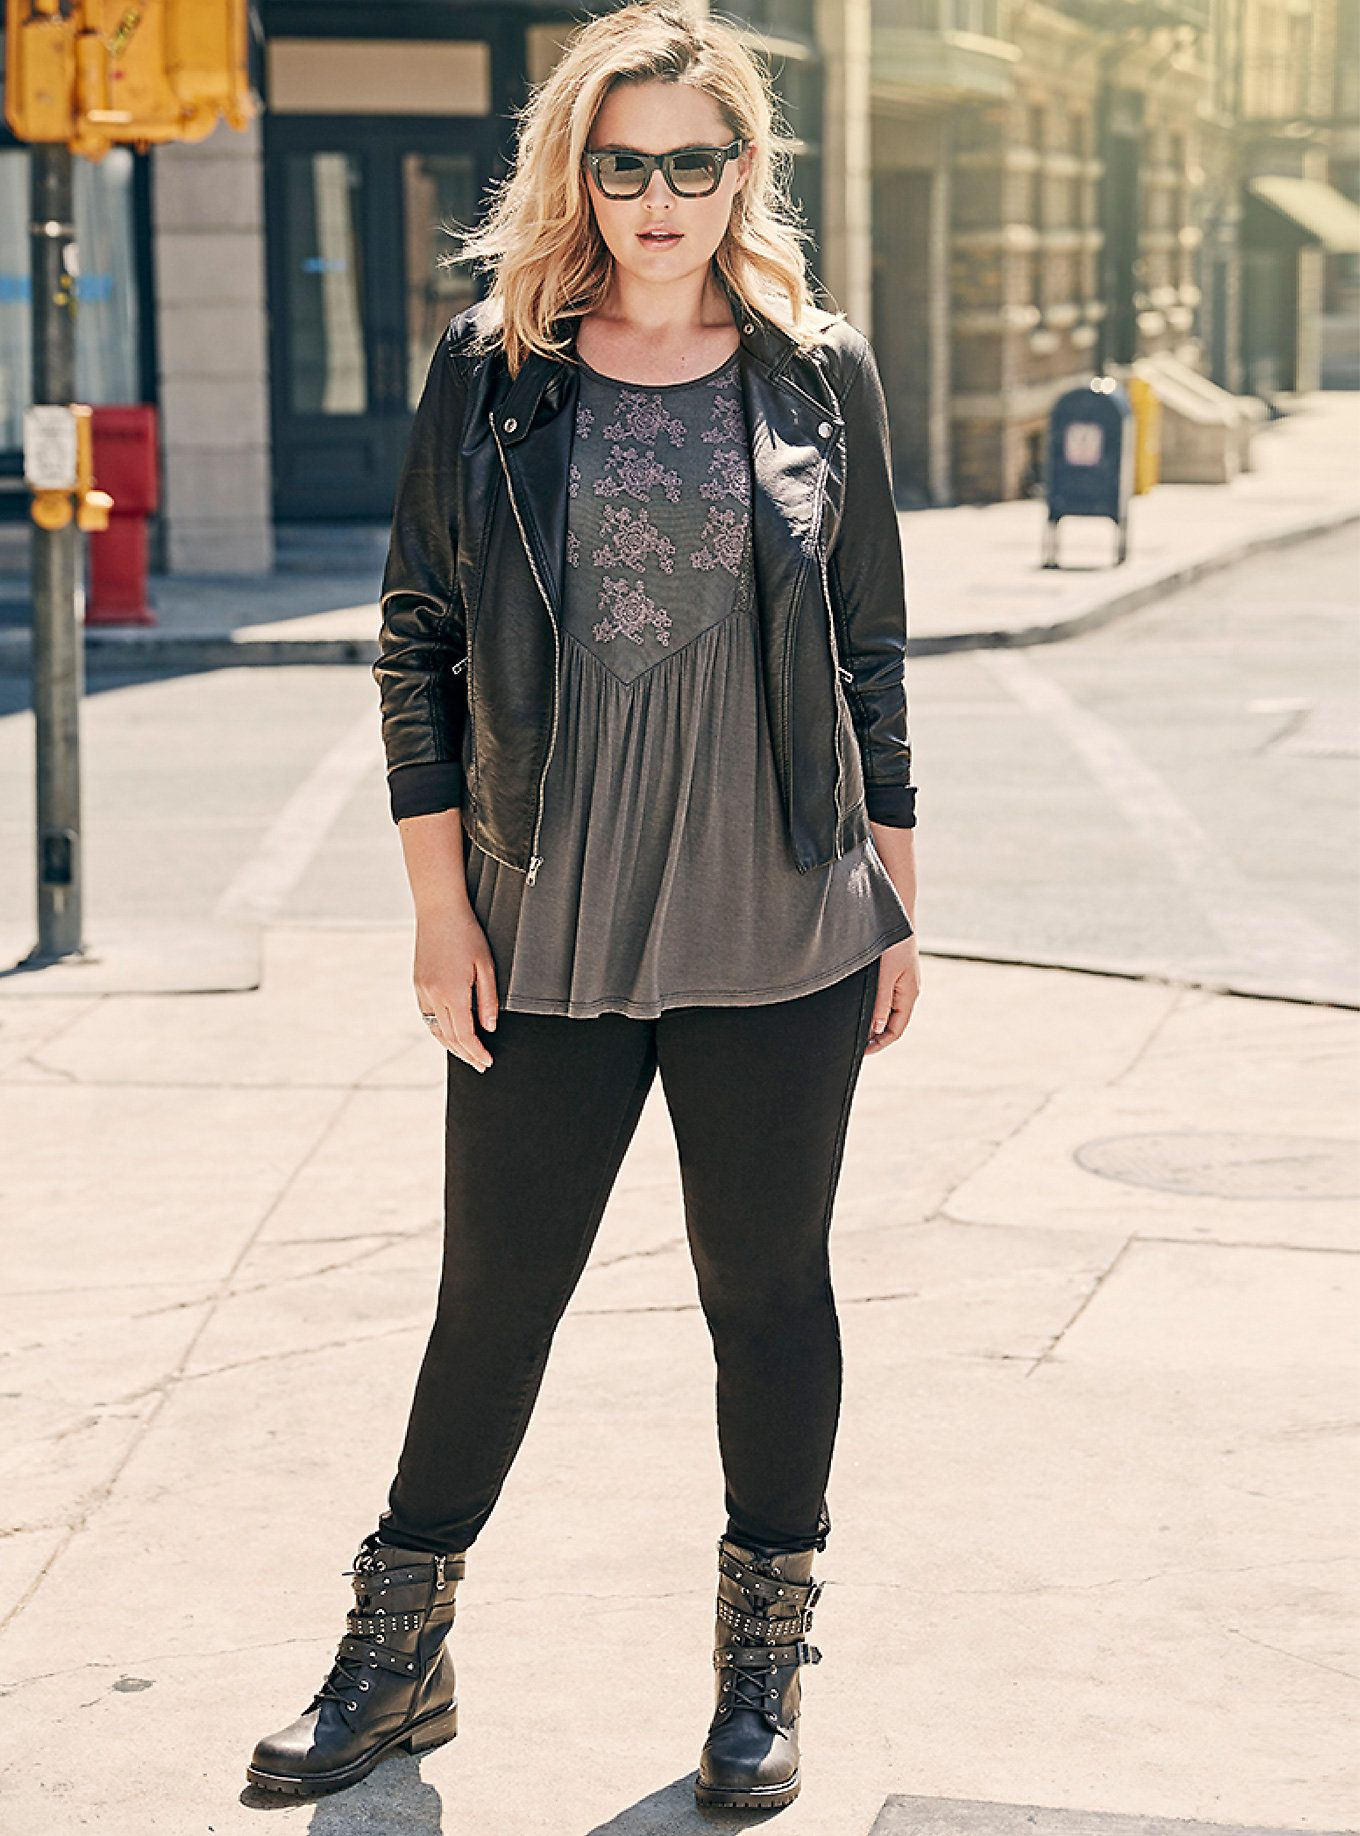 95ab36e636 Shop The Look | Play It Cool - Look 22 | Torrid | Fatshionista in ...